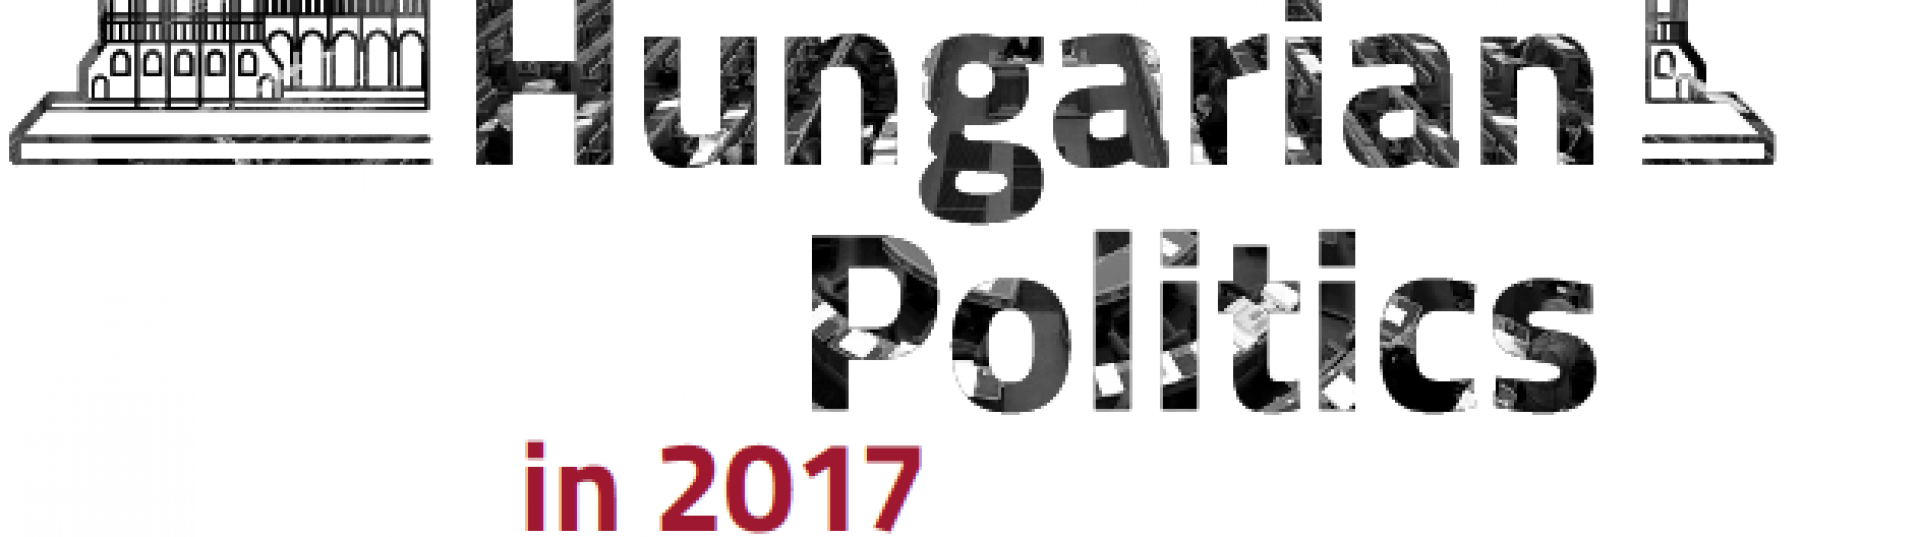 Conference - Hungarian Politics in 2017 - Book launch and panel discussion on the prospects in 2018